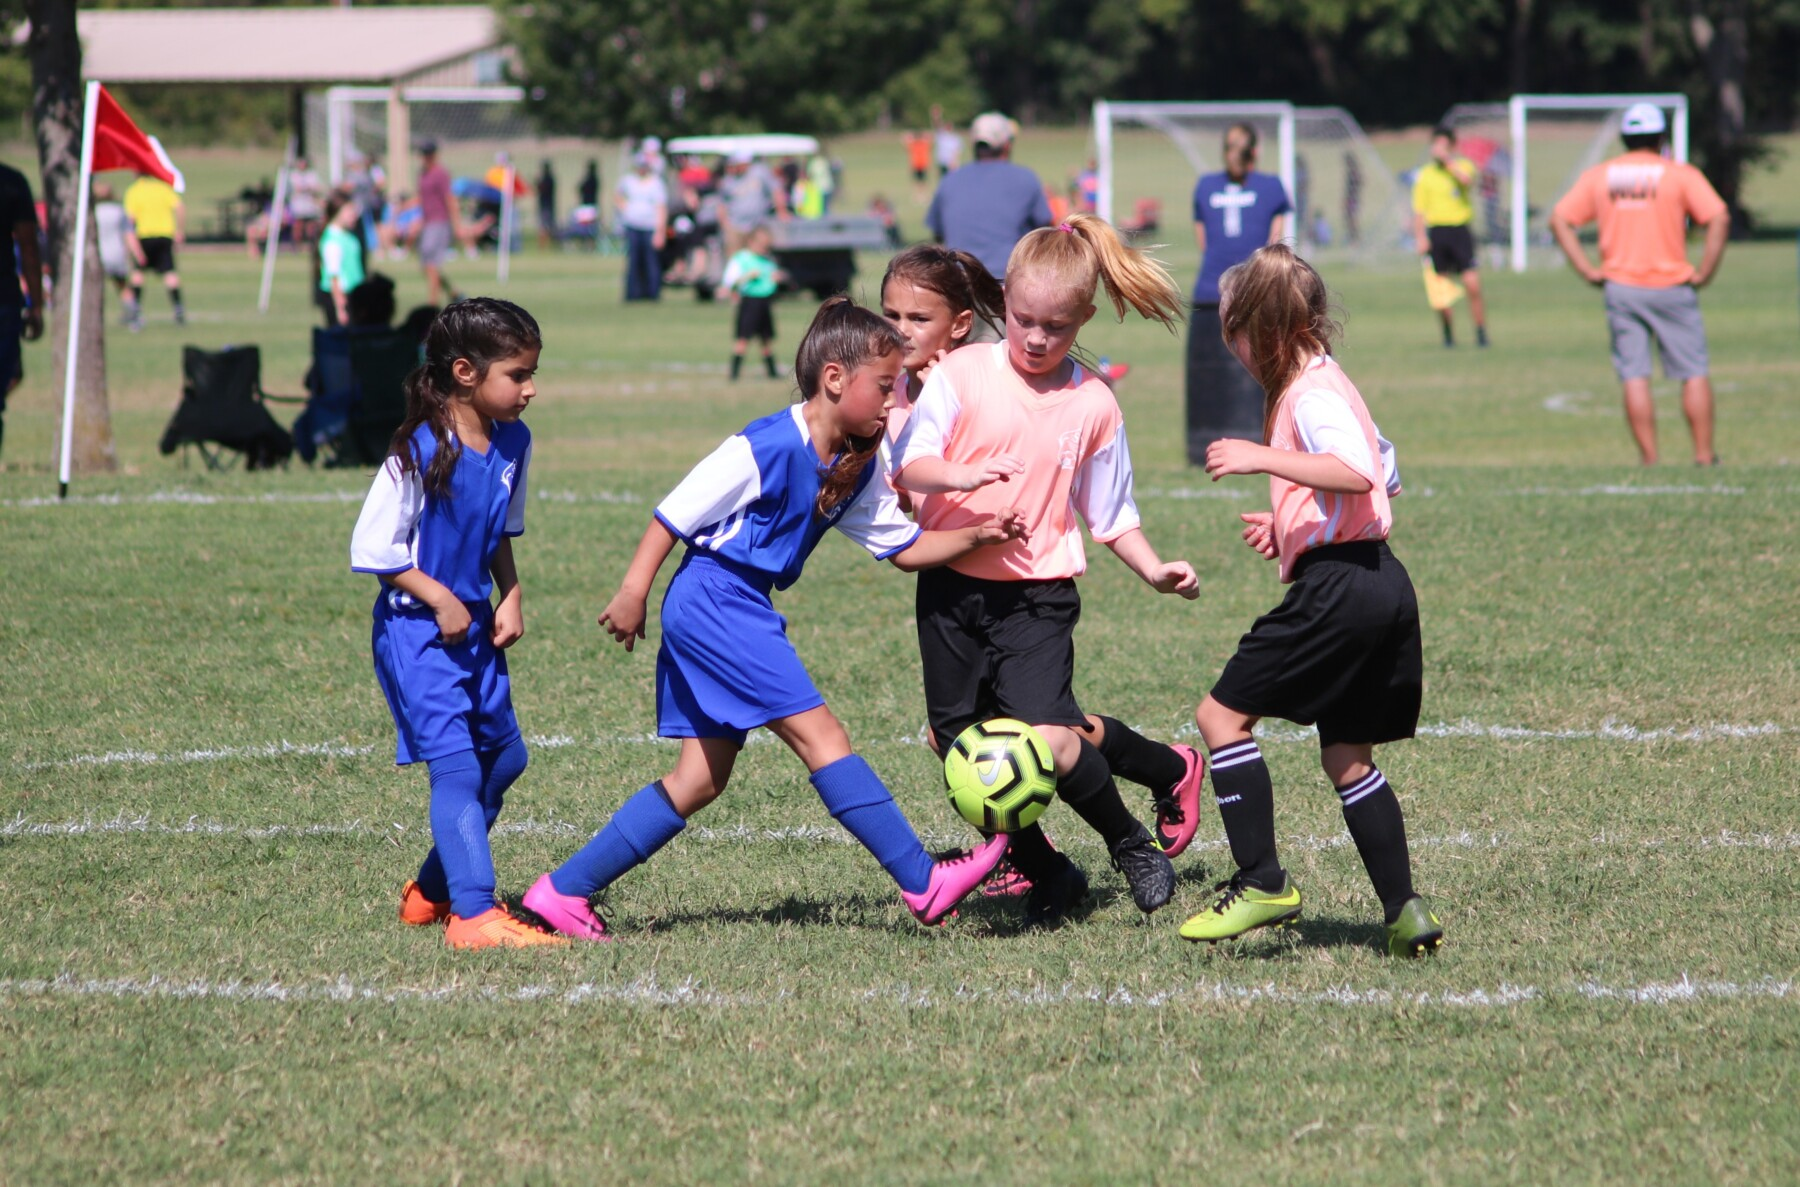 Youth-Soccer-IMG_5459